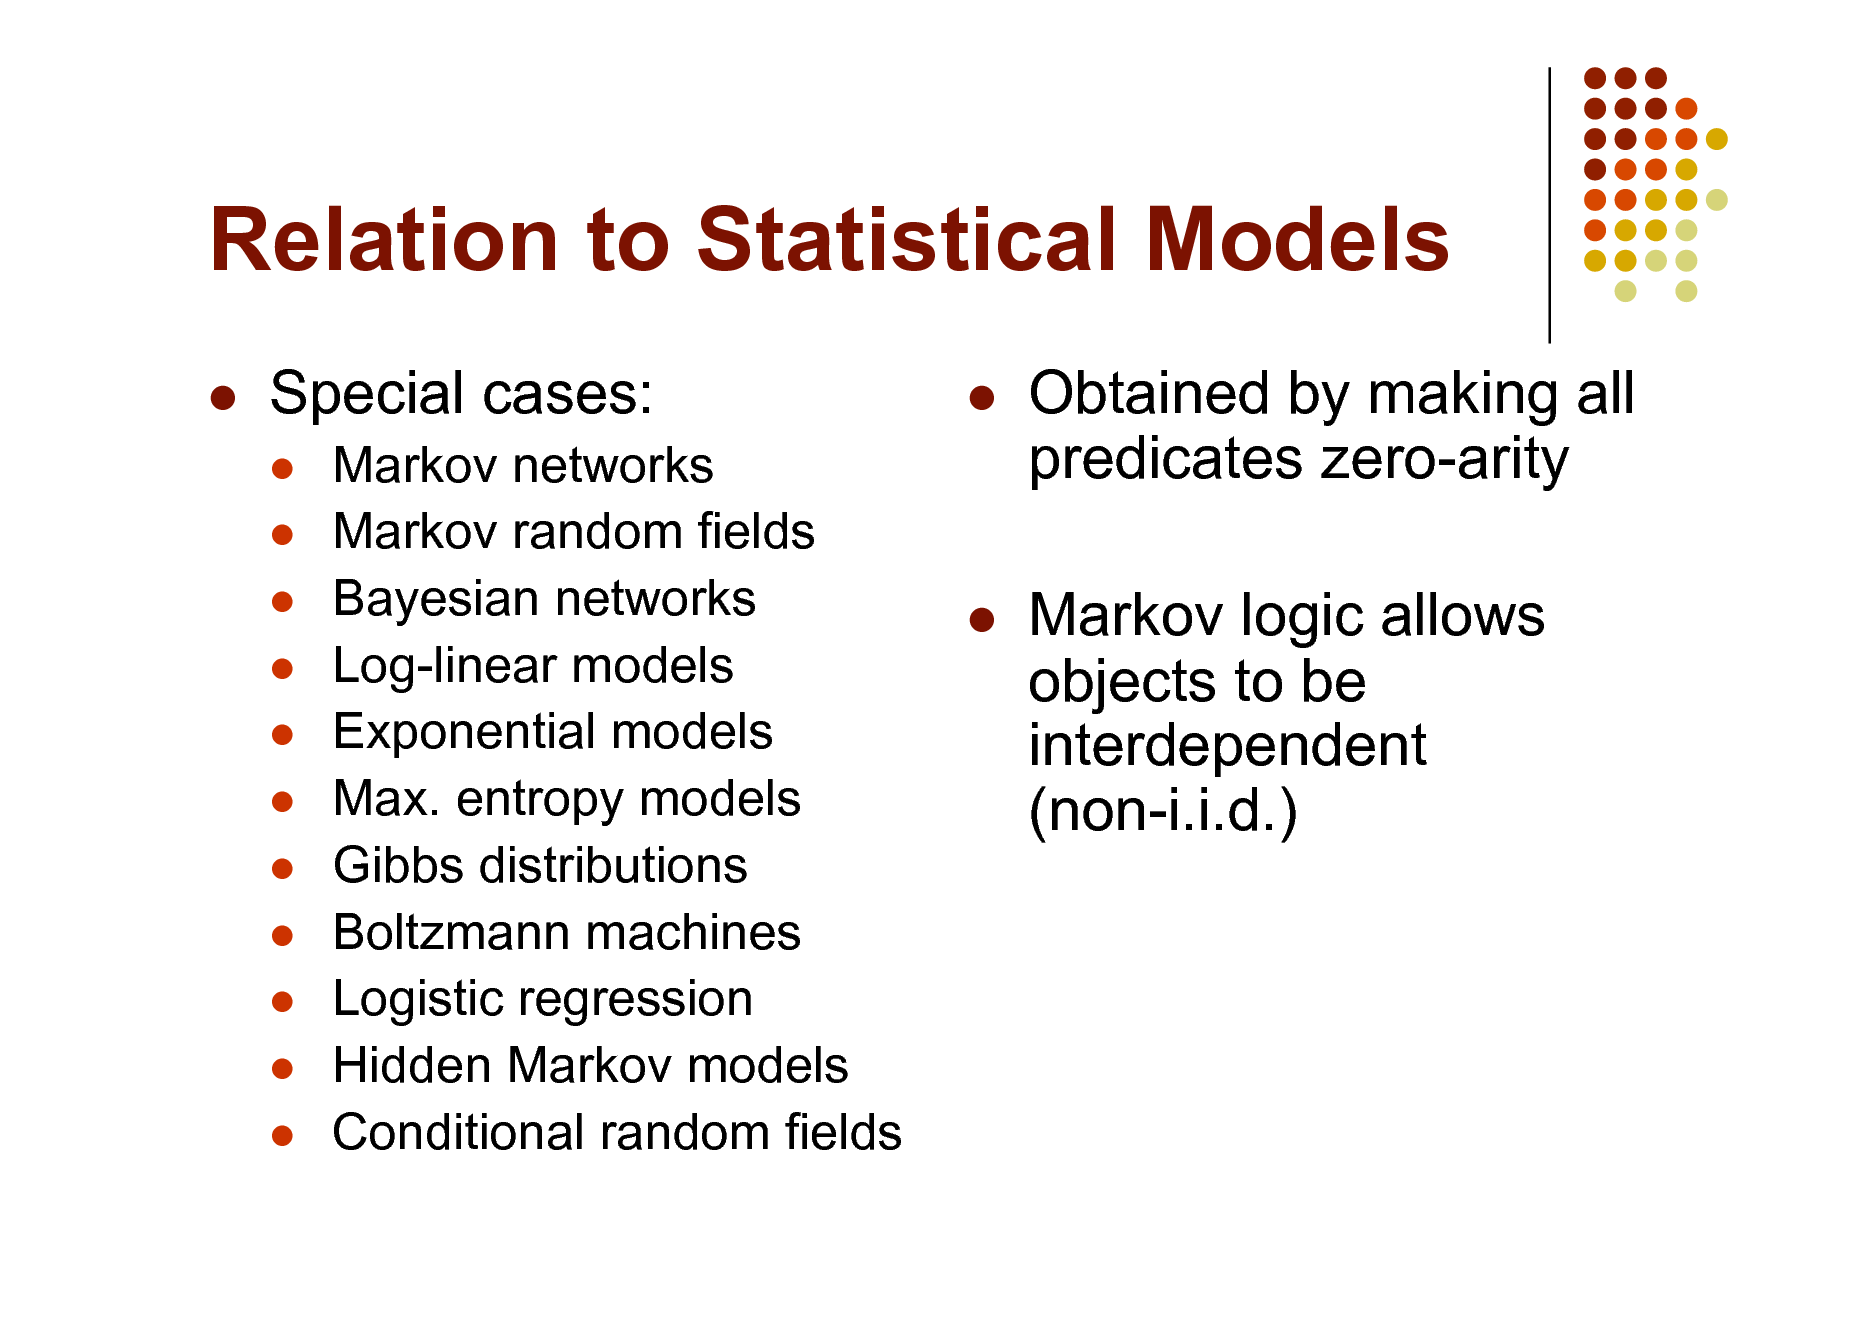 Slide: Relation to Statistical Models   Special cases:               Markov networks Markov random fields Bayesian networks Log-linear models Exponential models Max. entropy models Gibbs distributions Boltzmann machines Logistic regression Hidden Markov models Conditional random fields  Obtained by making all predicates zero-arity Markov logic allows objects to be interdependent (non-i.i.d.)